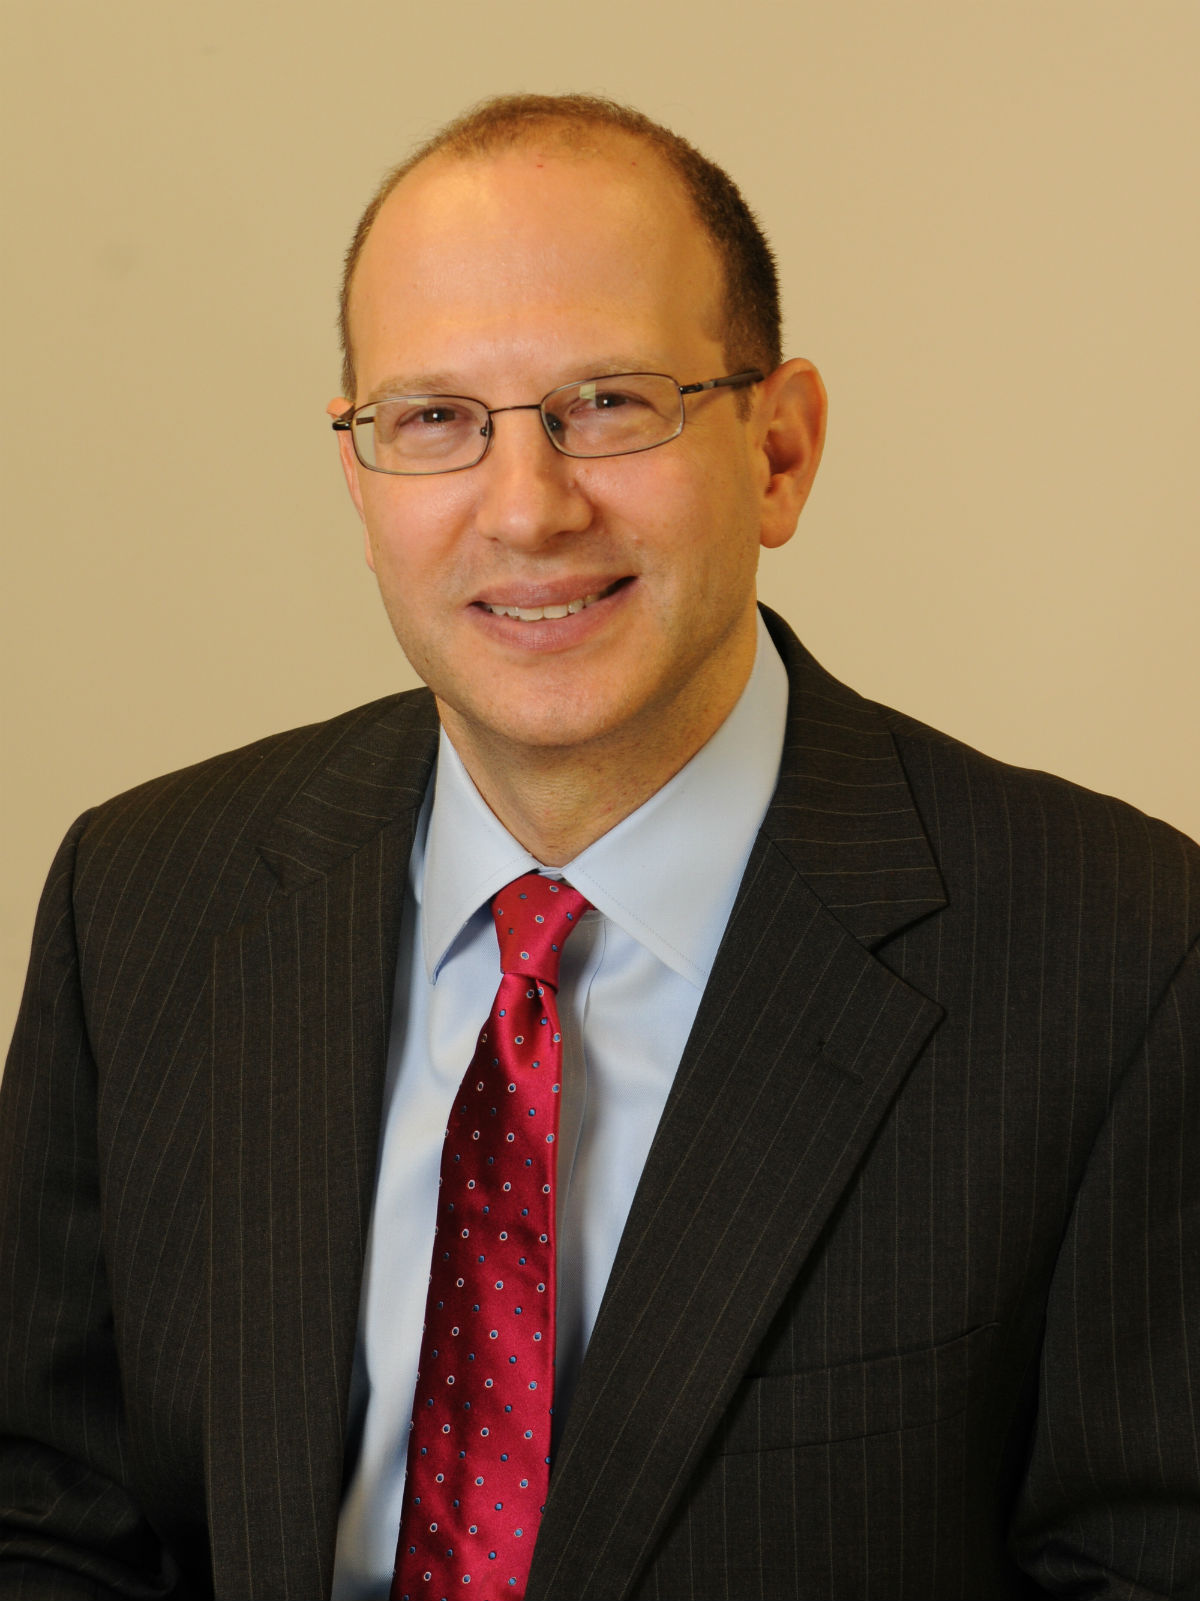 Rodger Citron will serve as Associate Dean for Academic Affairs at the Touro Law Center